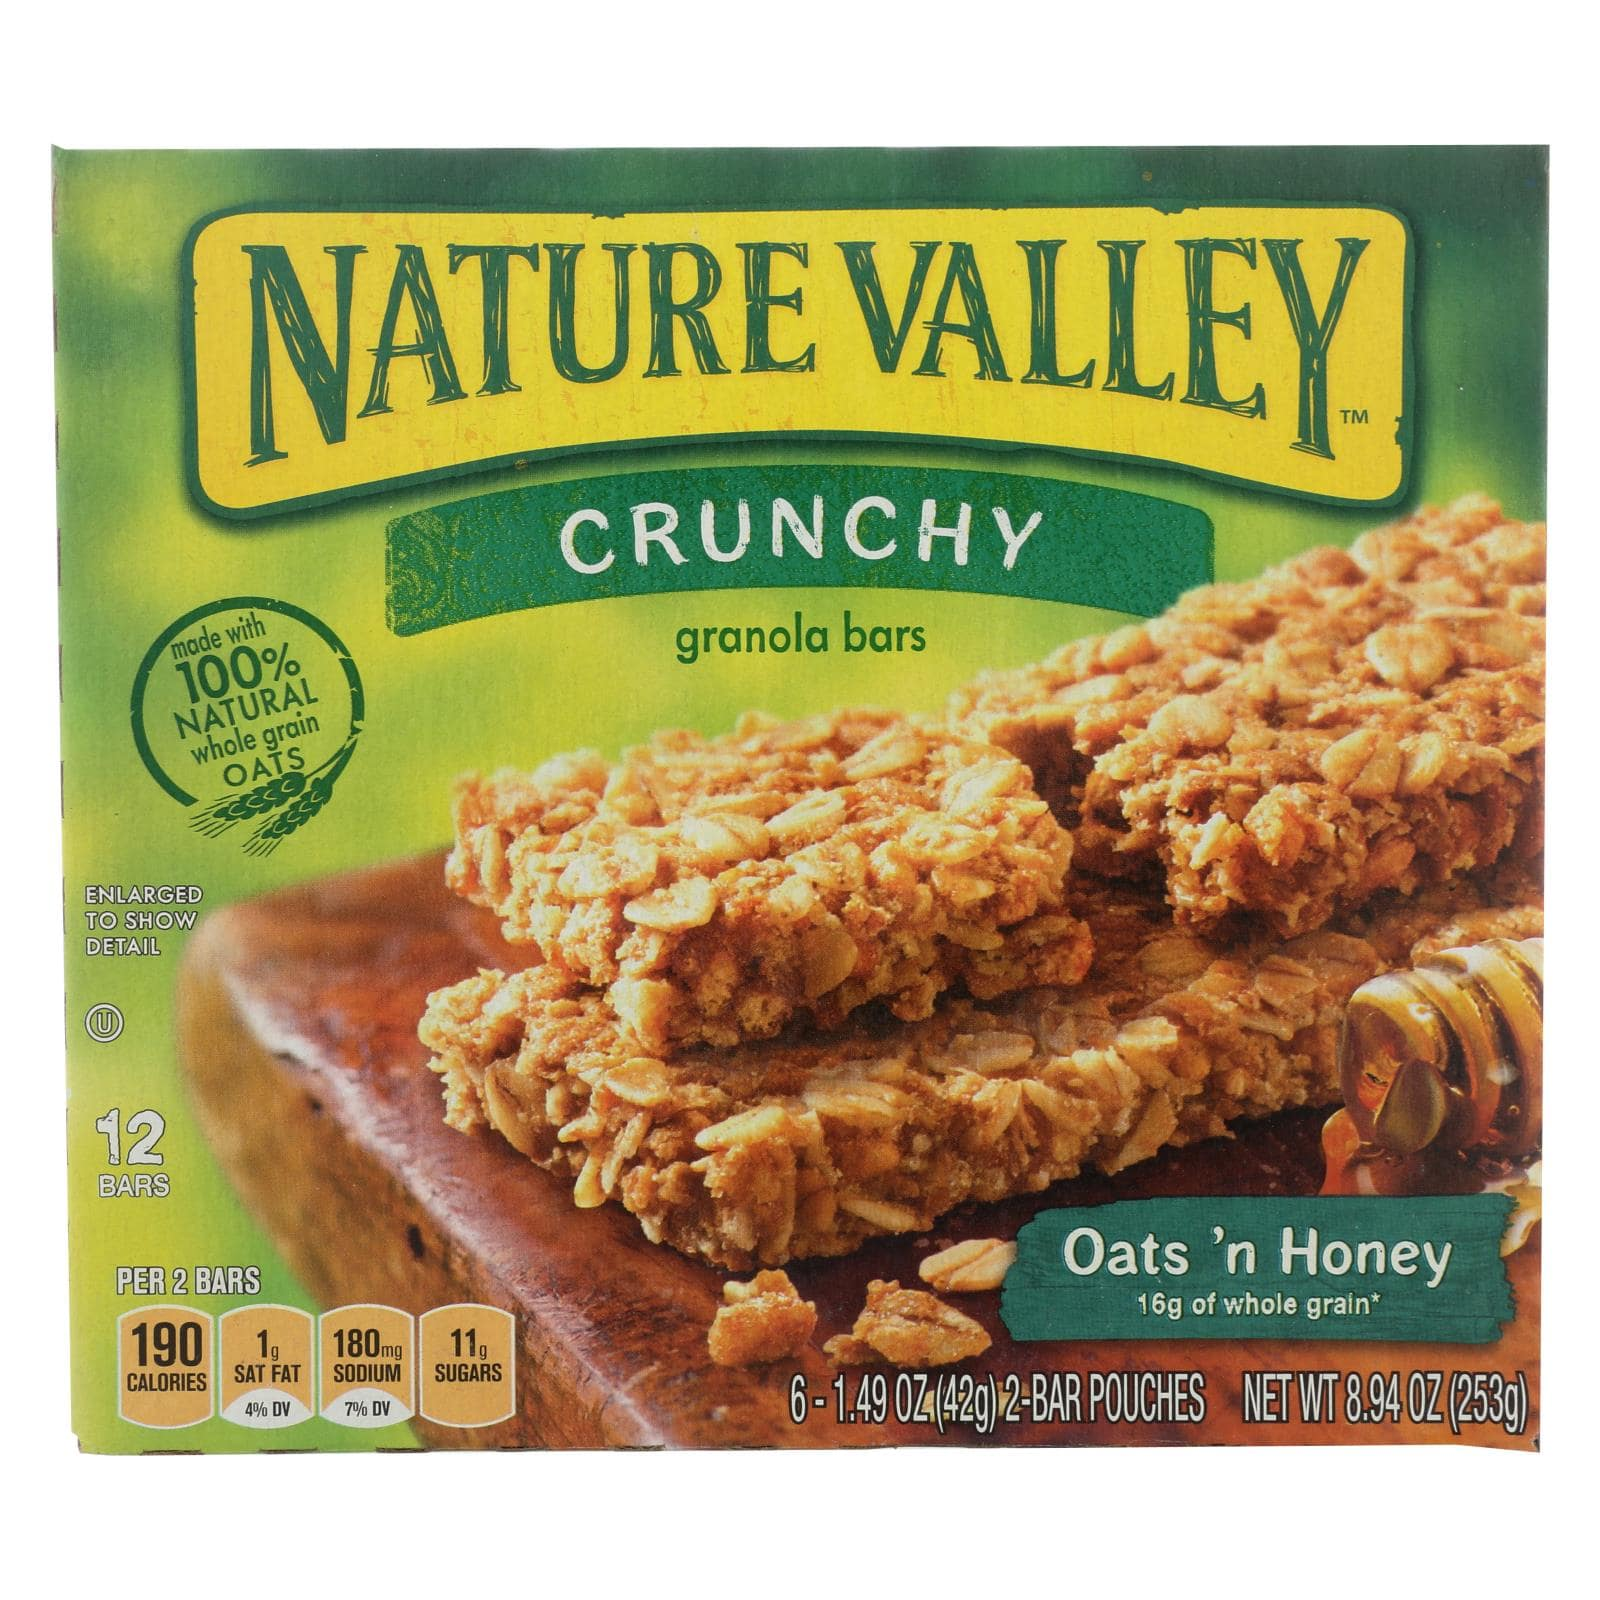 Nature Valley Oats 'n' Honey